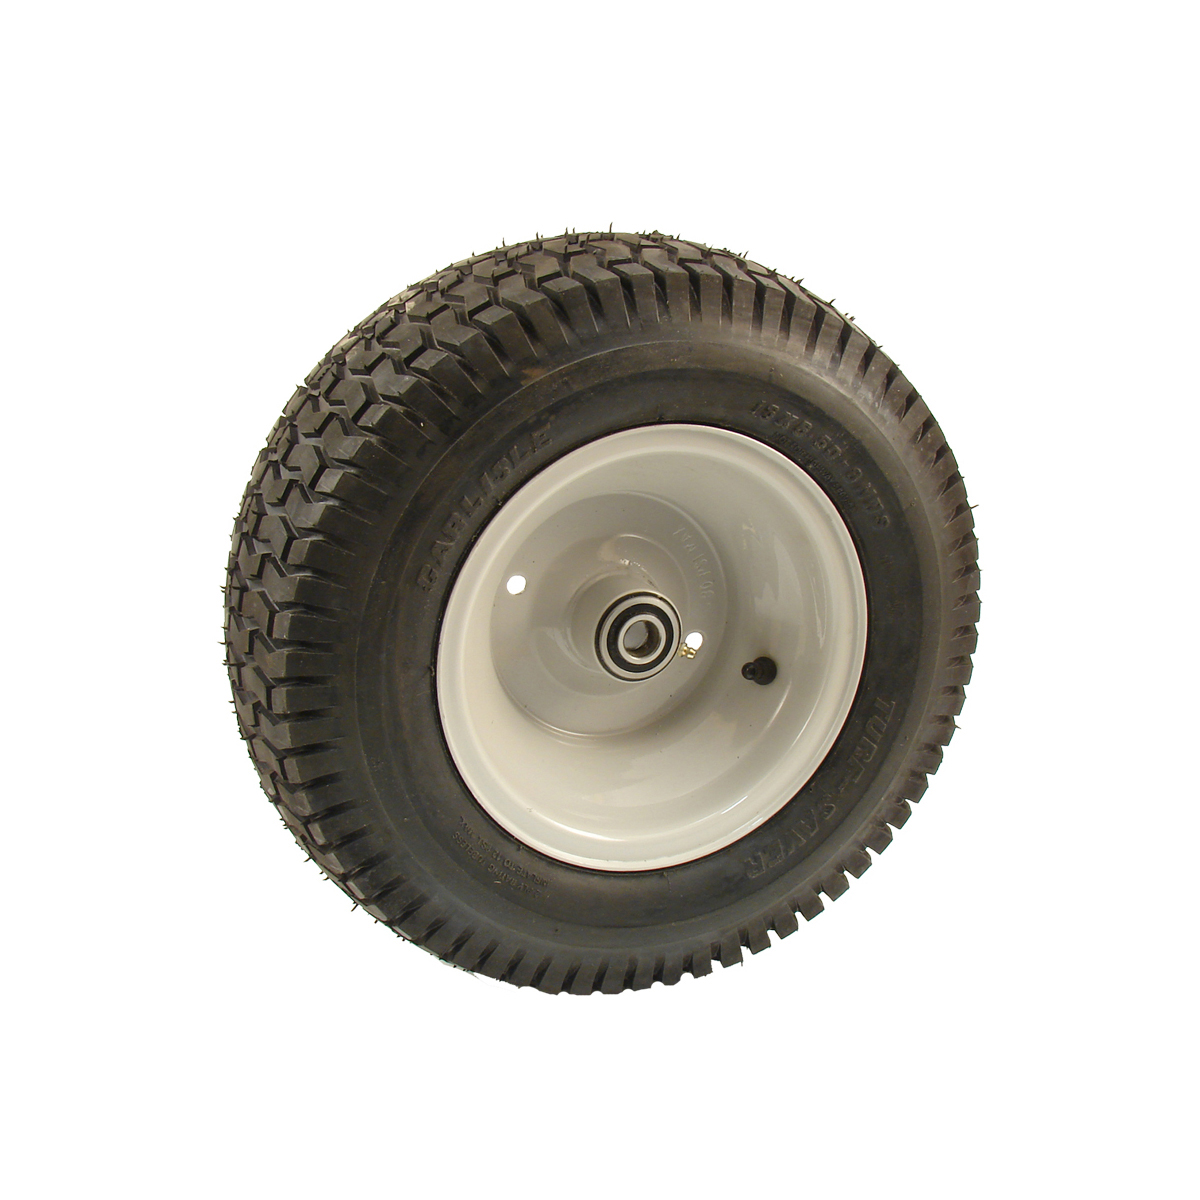 Cub Cadet Wheel Assembly W Tire Oystr W Carl 634 0085